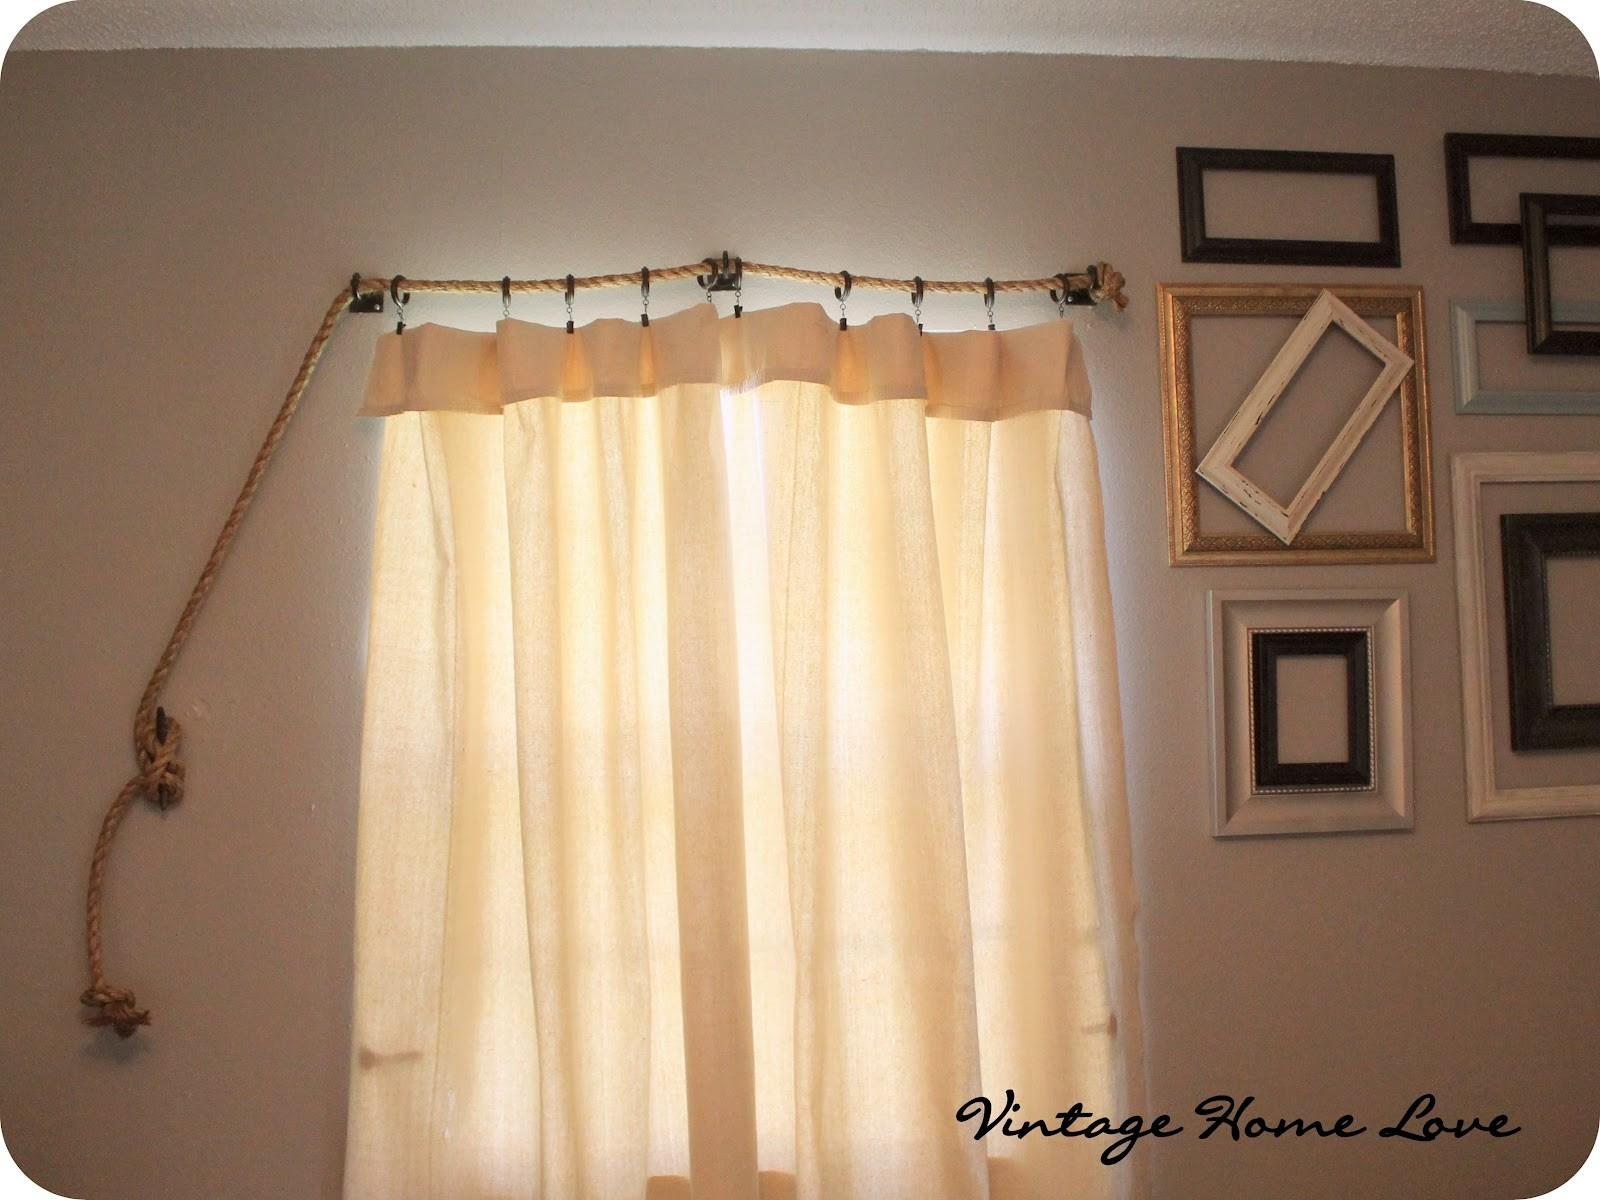 Vintage Home Love Rope Curtain Rod Diy Curtains